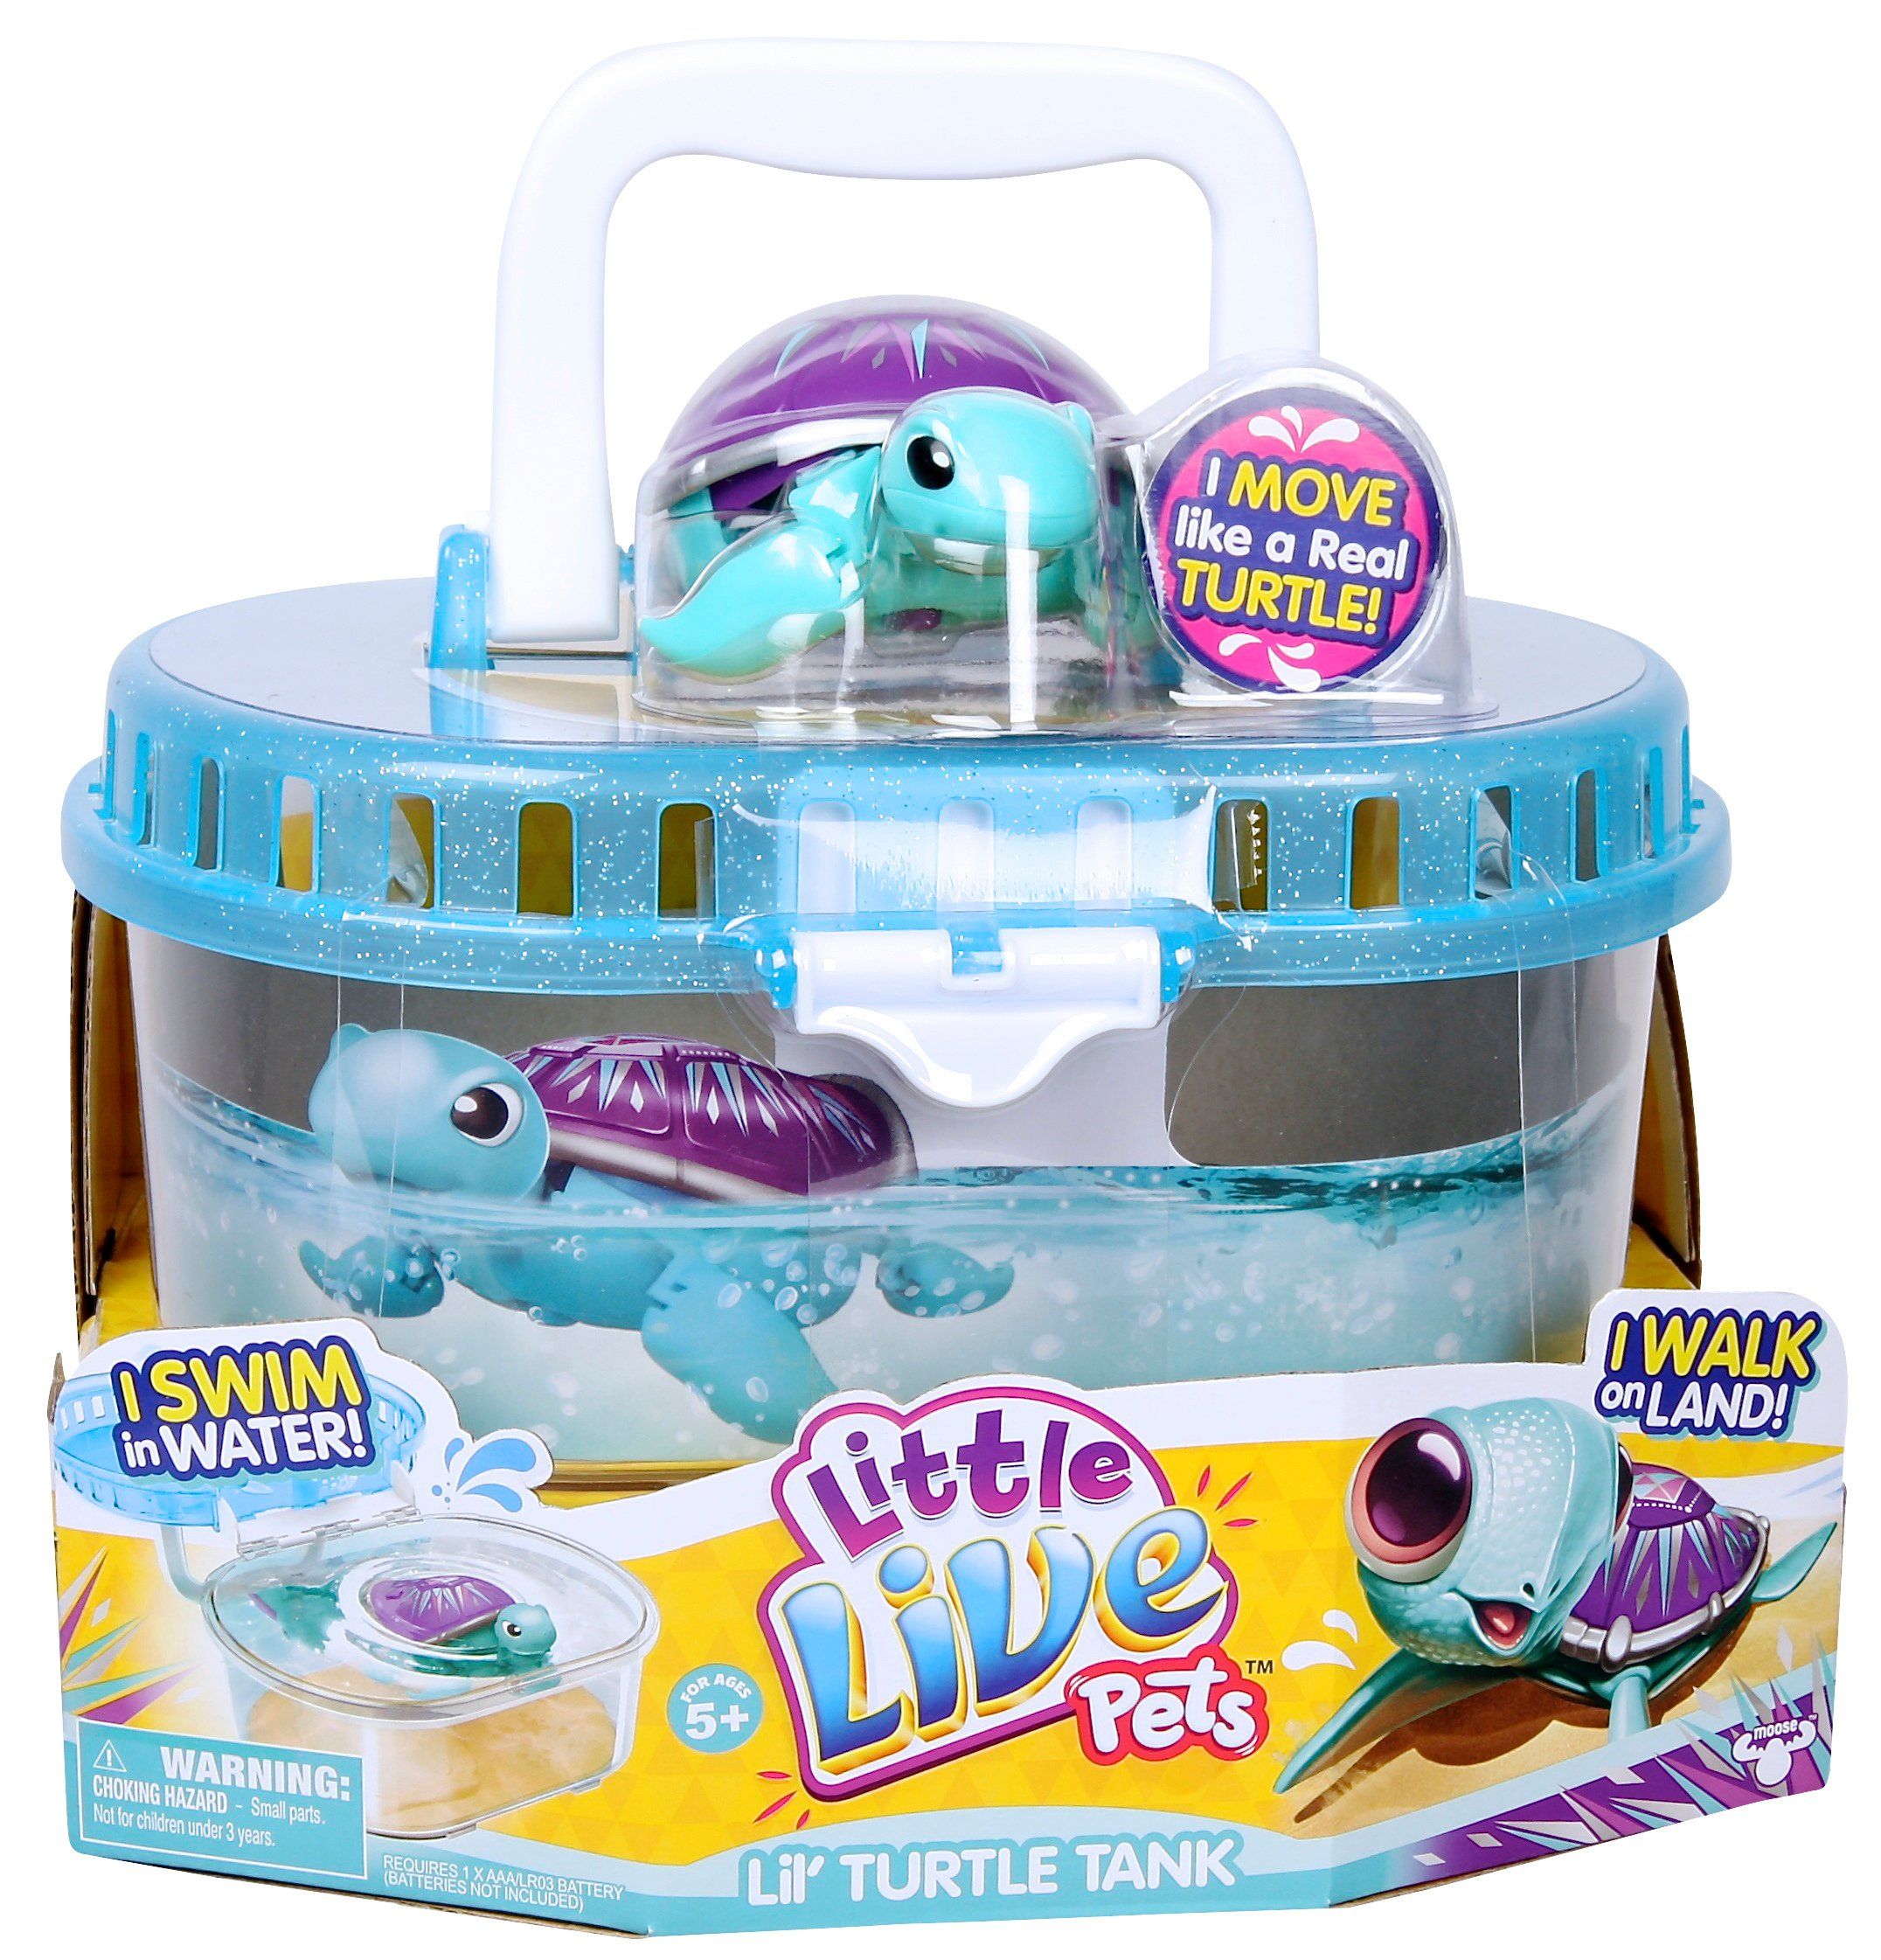 Little Live Pets S3 Lil' Turtle Tank